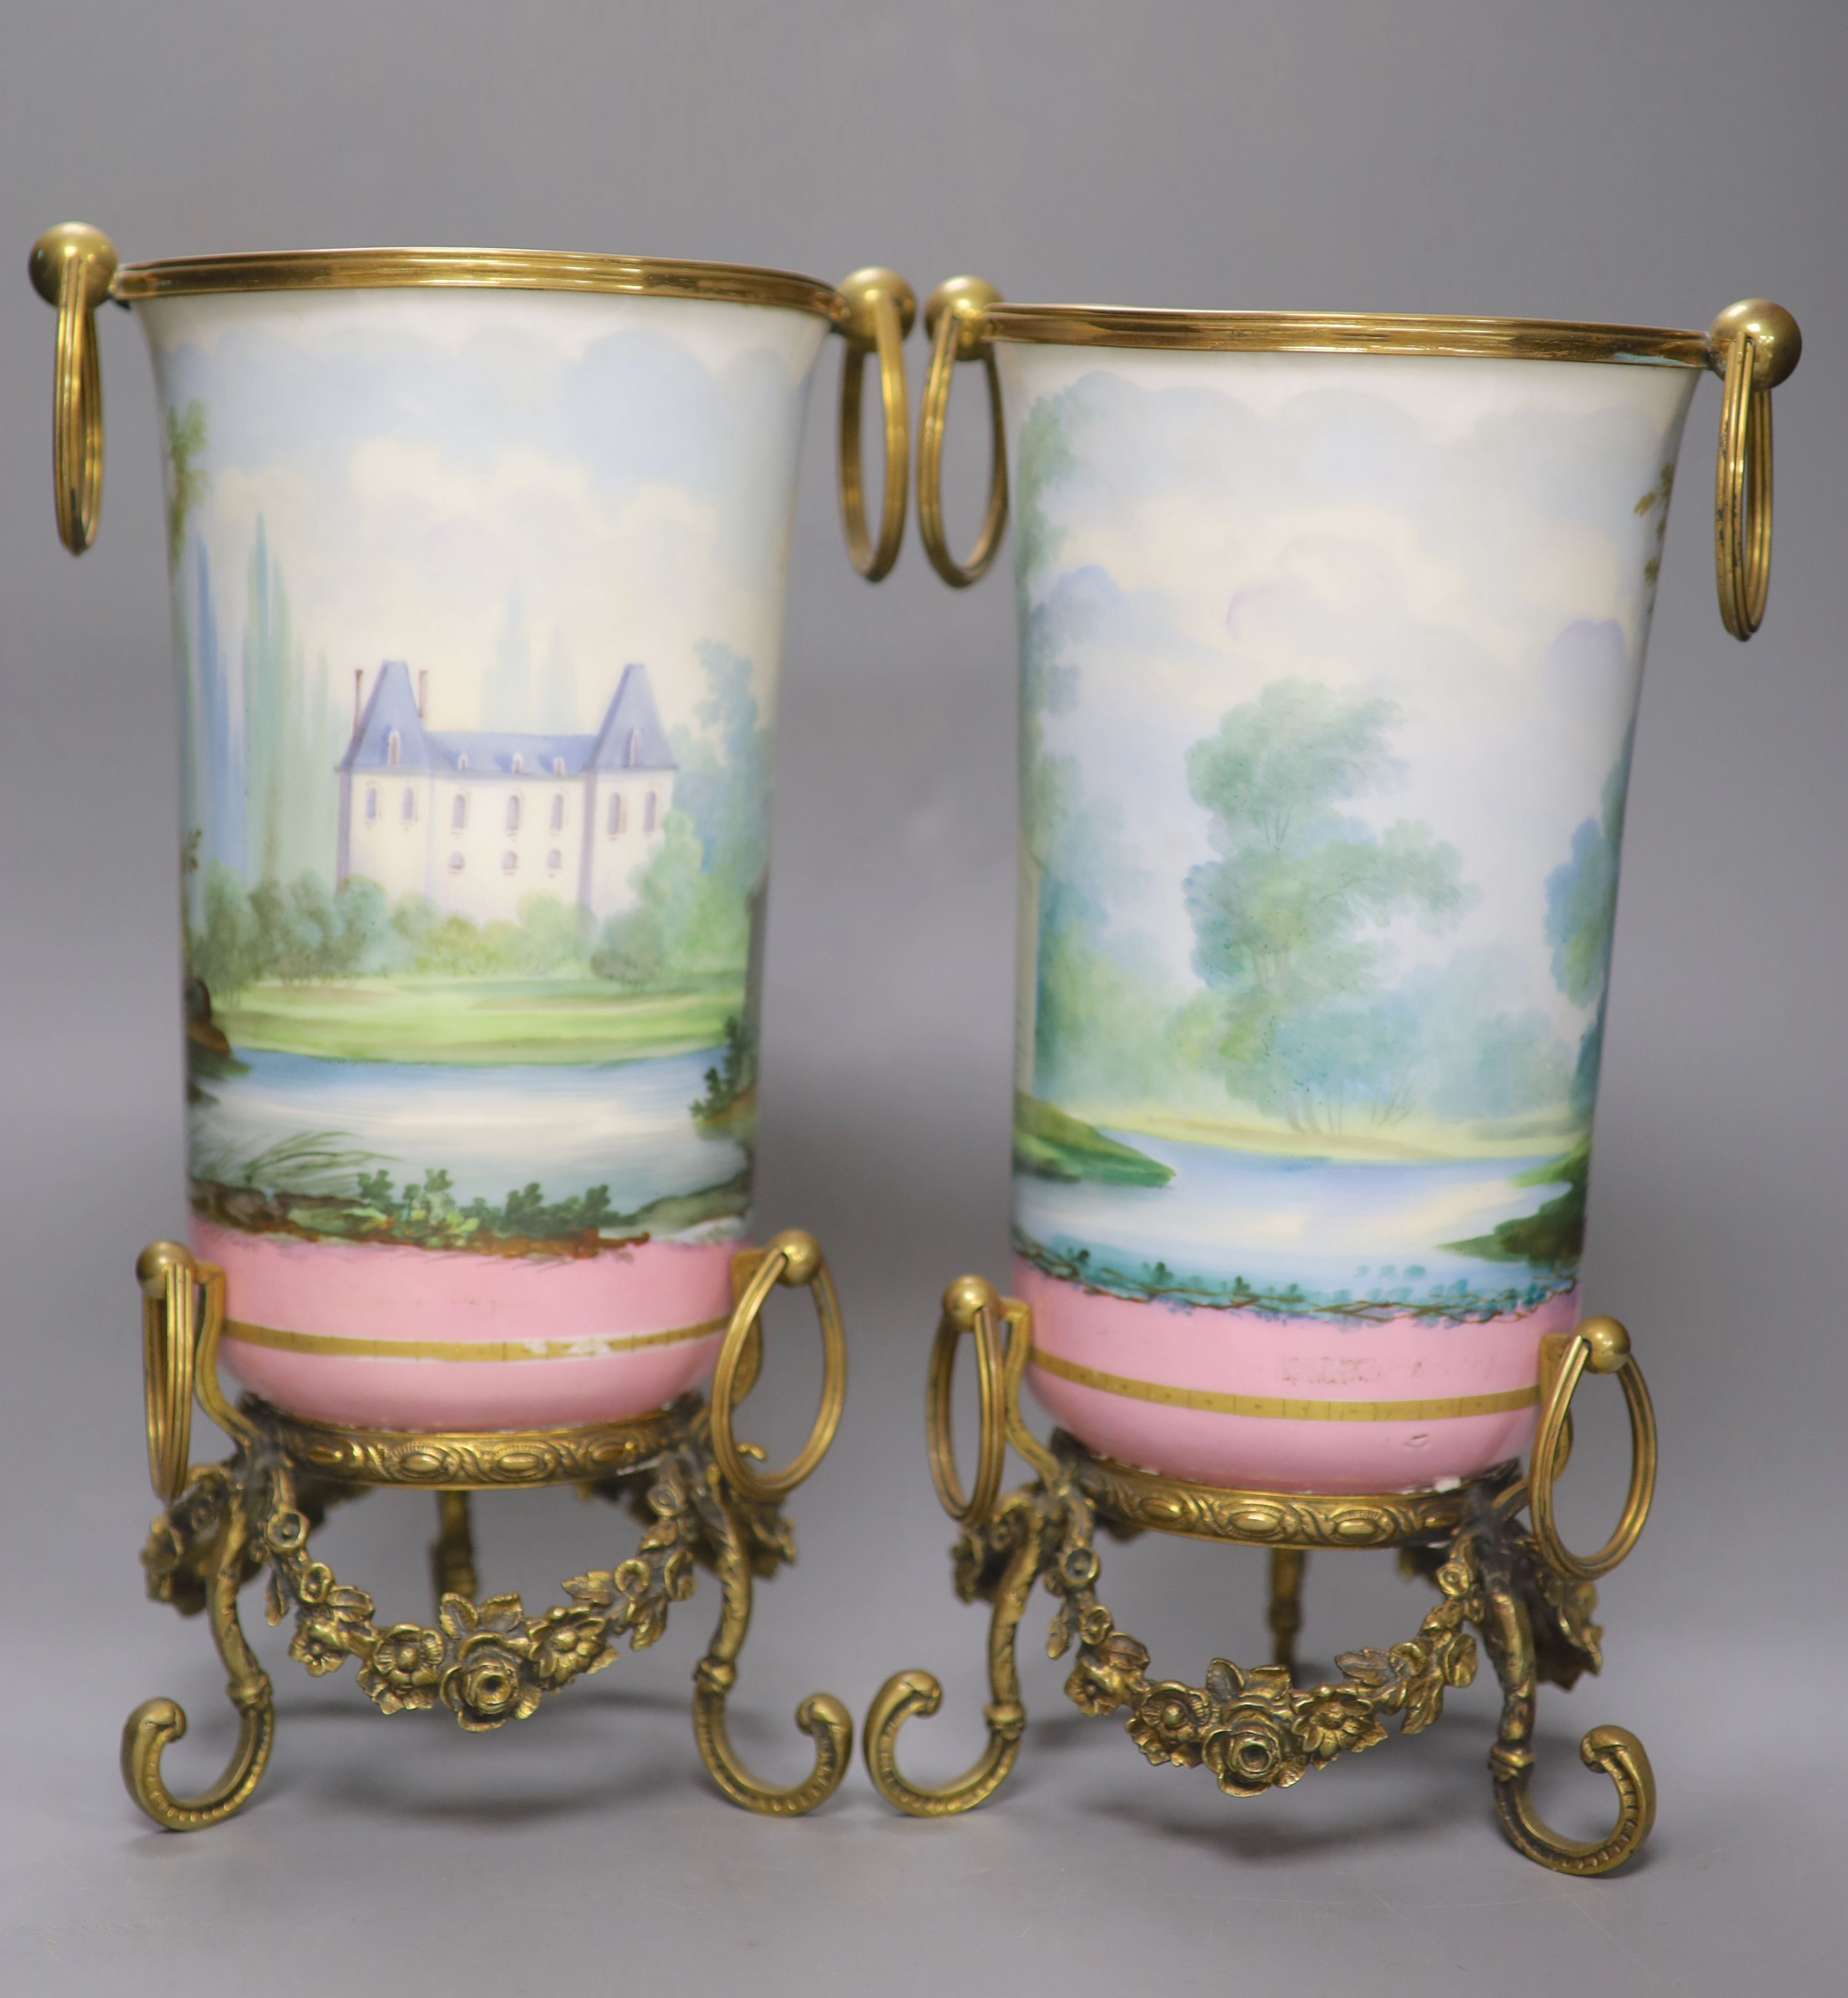 A pair of late 19th century Paris porcelain and gilt metal mounted vases, height 33cmCONDITION: Good - Image 2 of 4